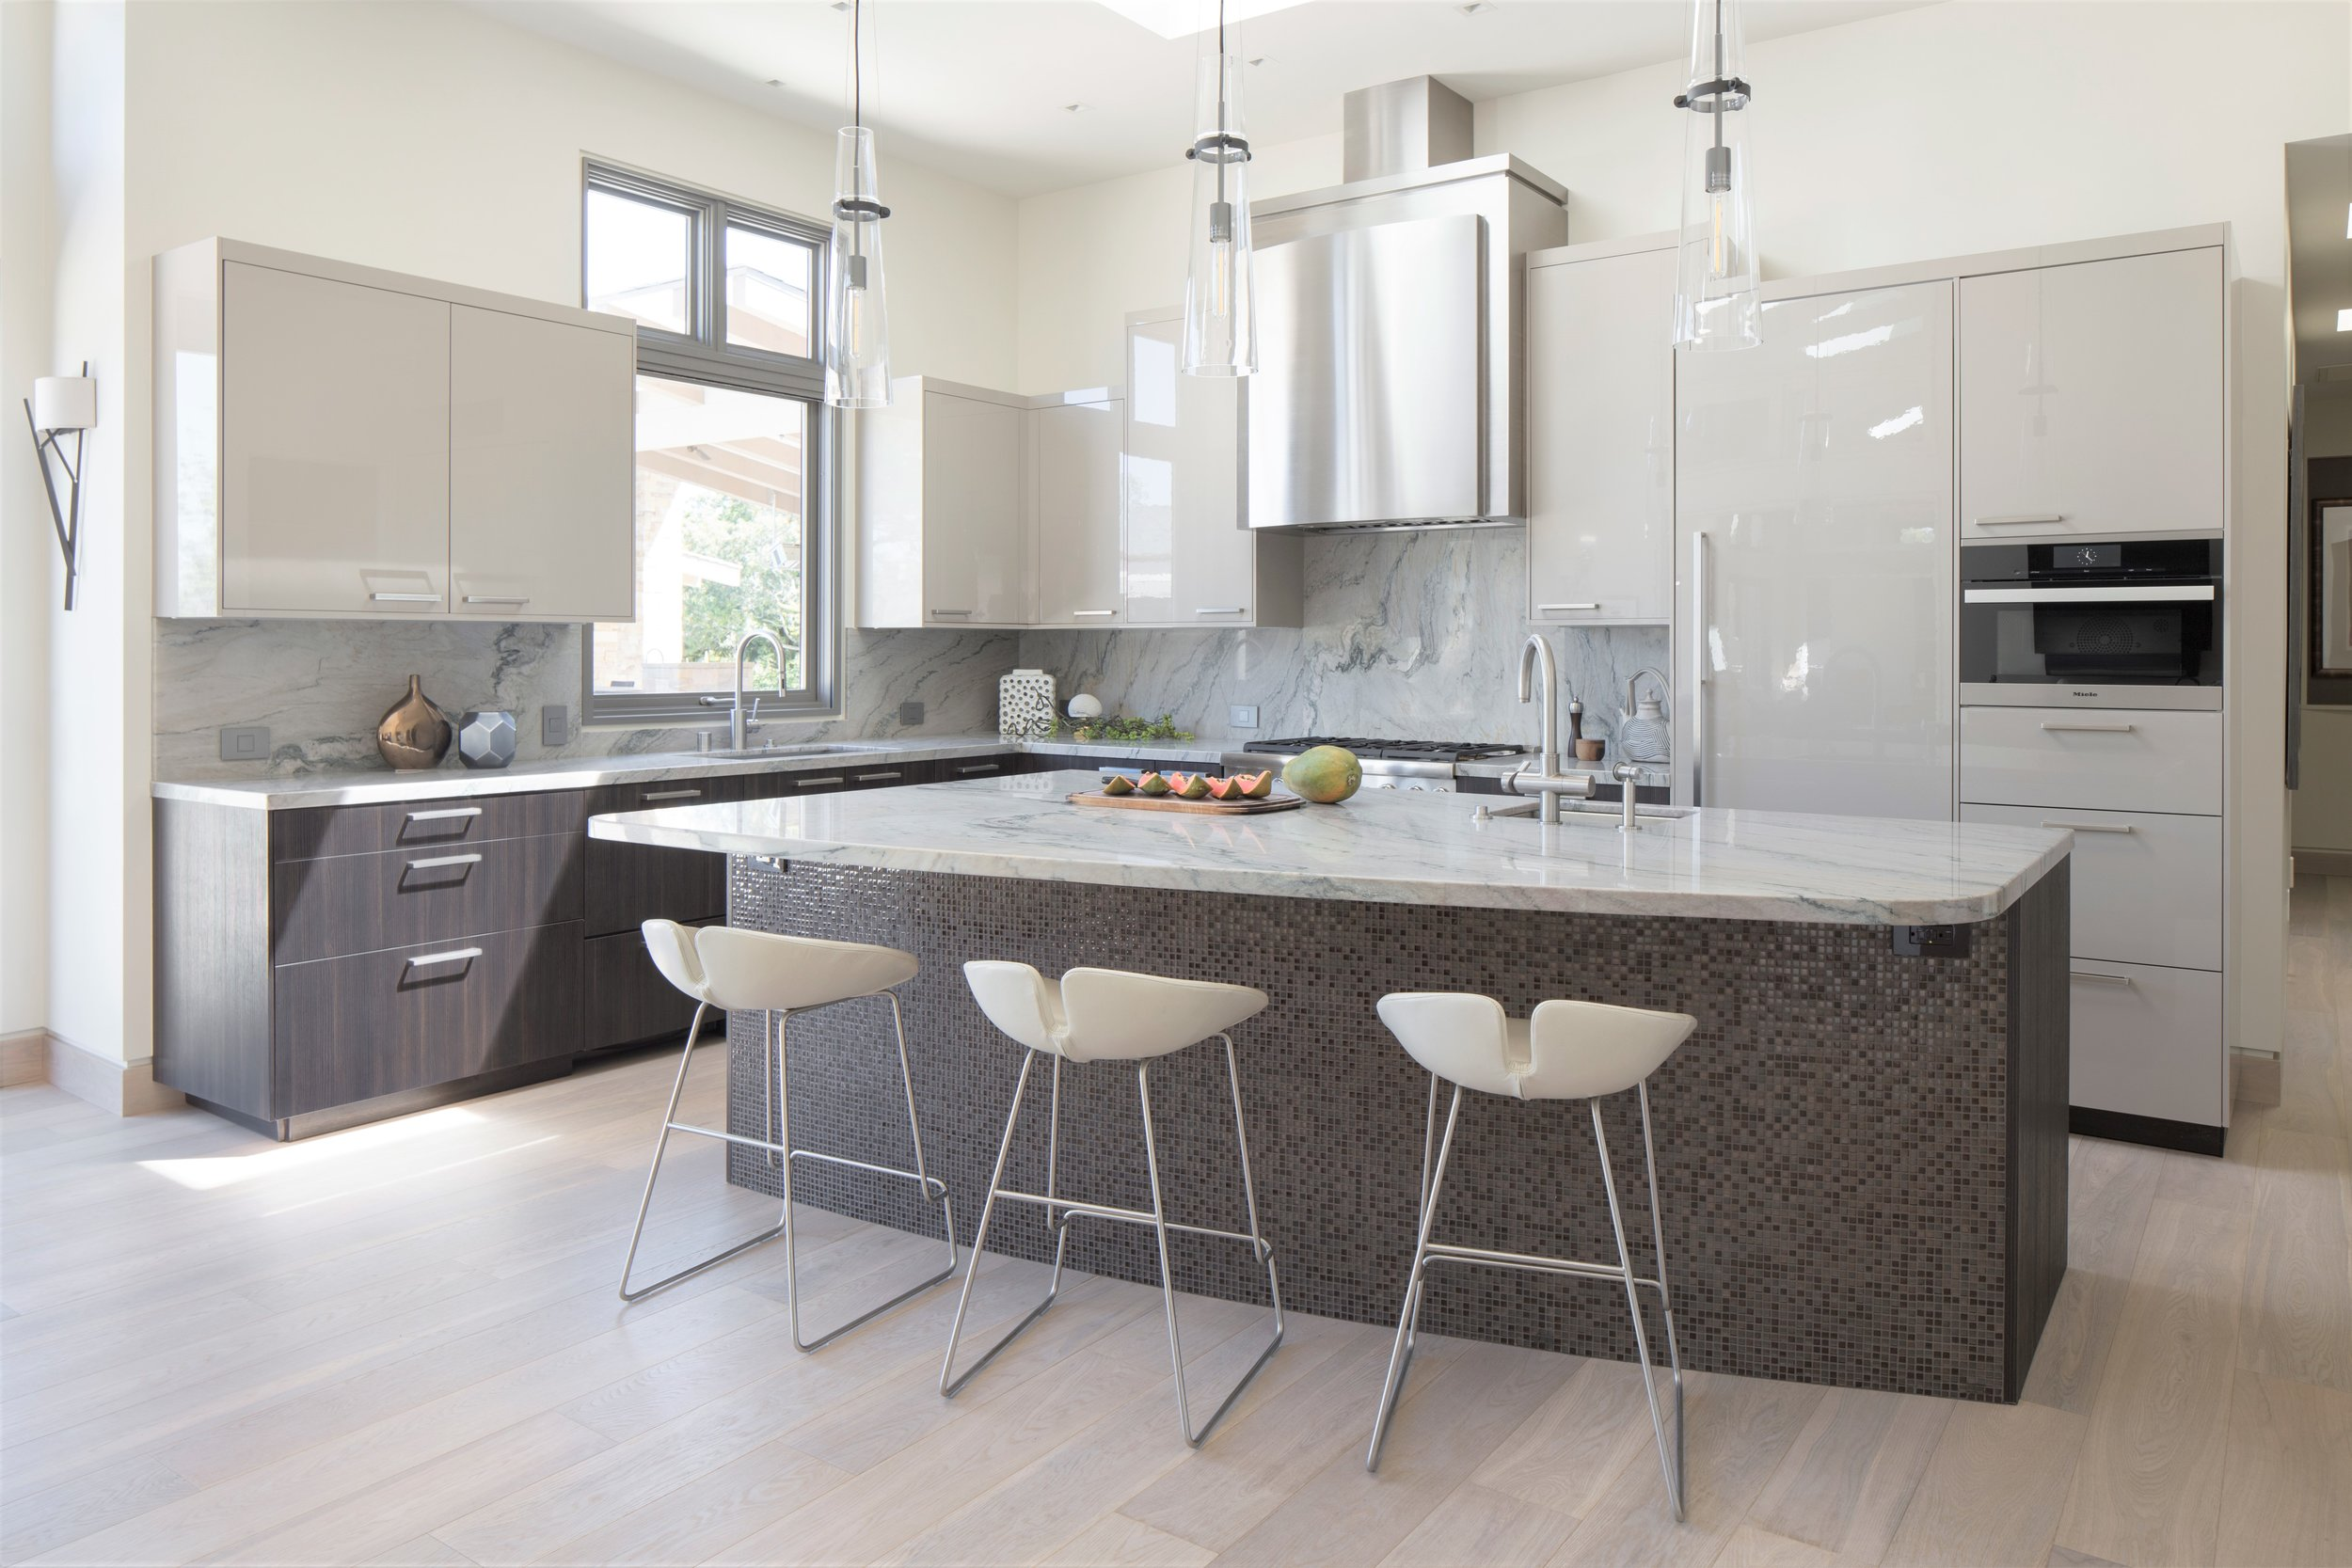 Modern Kitchen in with leather bar stools